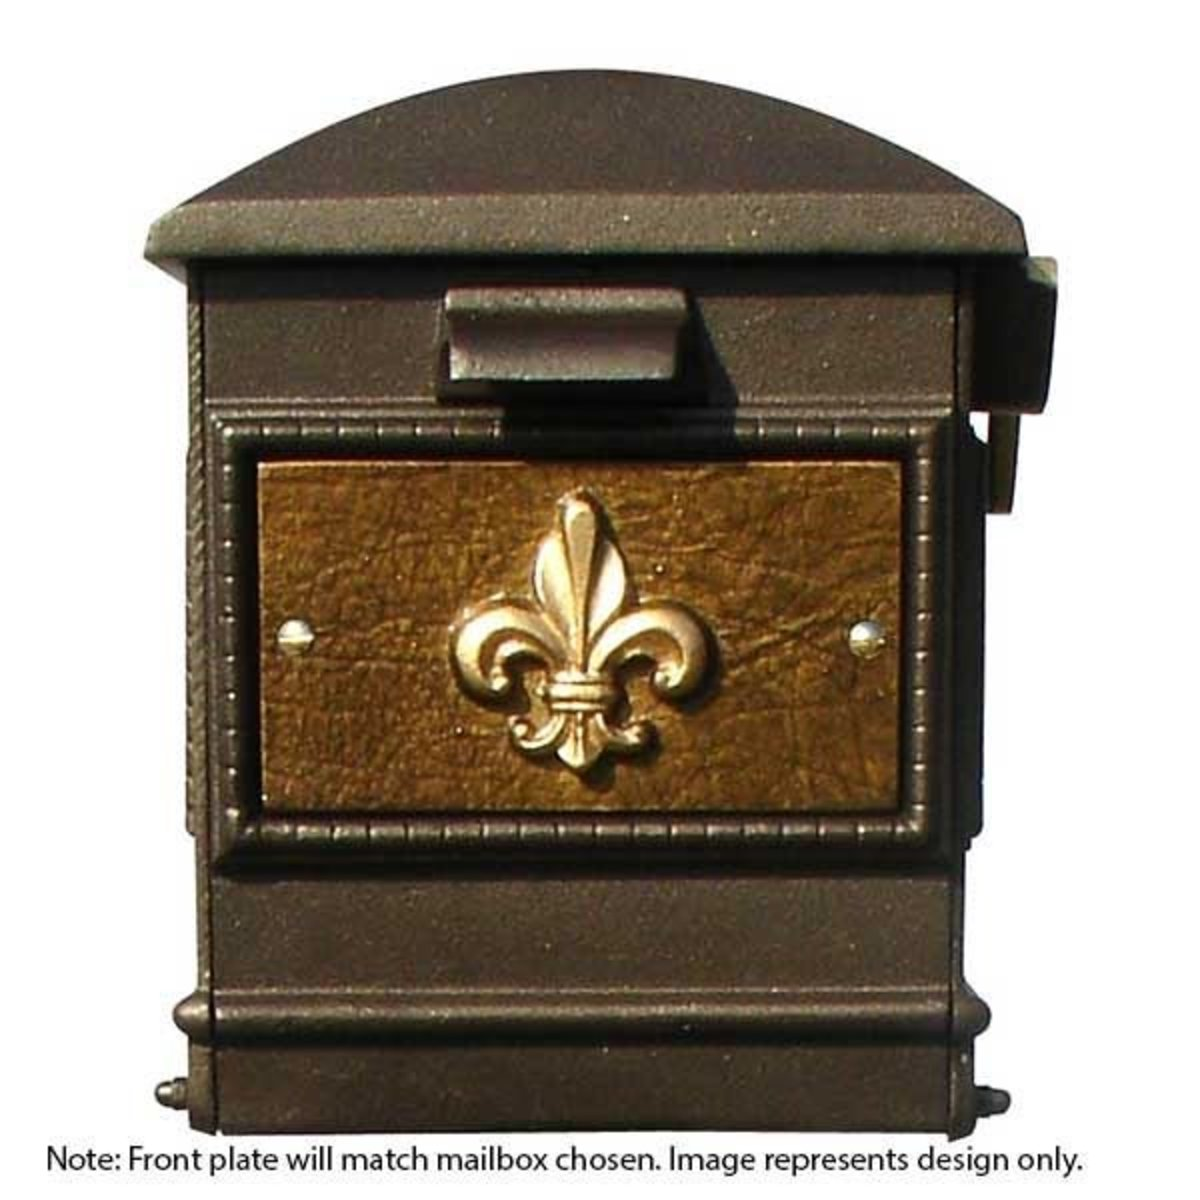 Picture of: Qualarc Lewiston Equine Mailbox With Post Horsehead Finial Fluted Base And Fleur De Lis Front Plat